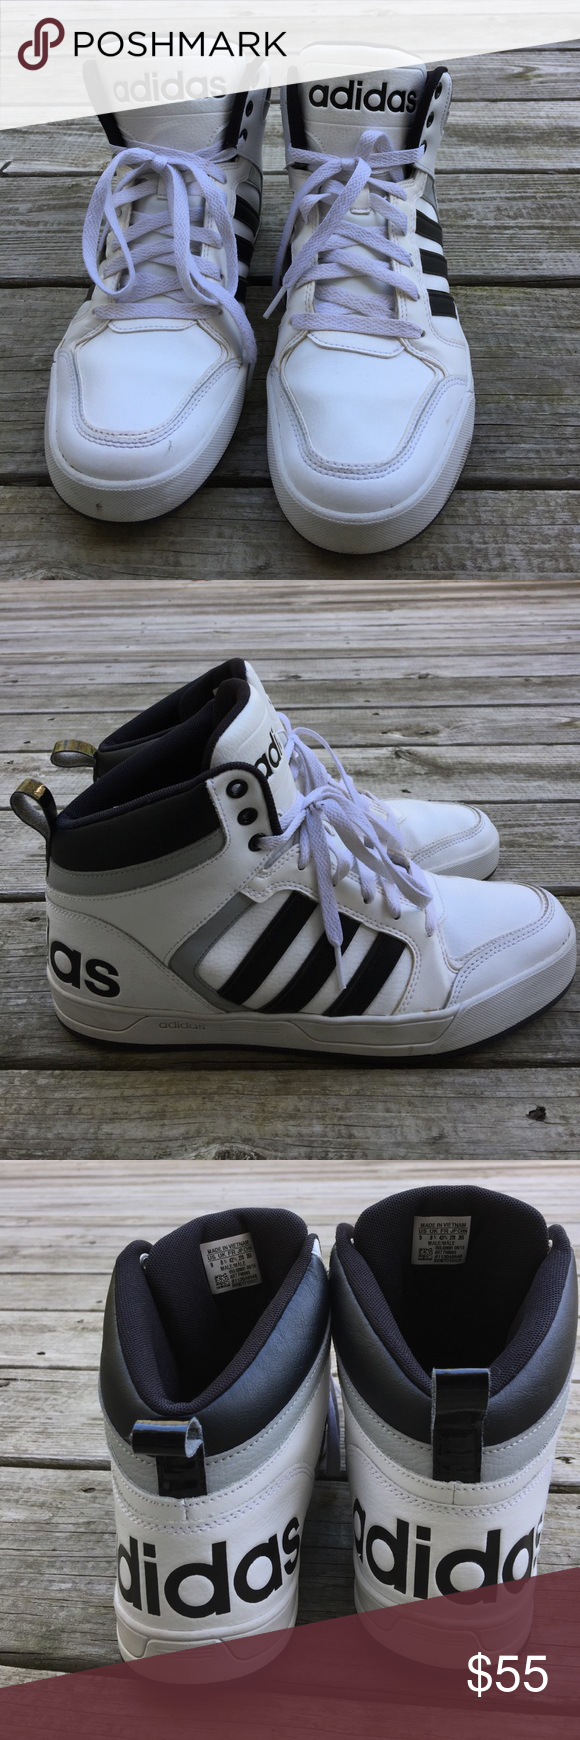 Adidas Ortholite High Top zapatilla High Top sneakers, High Tops